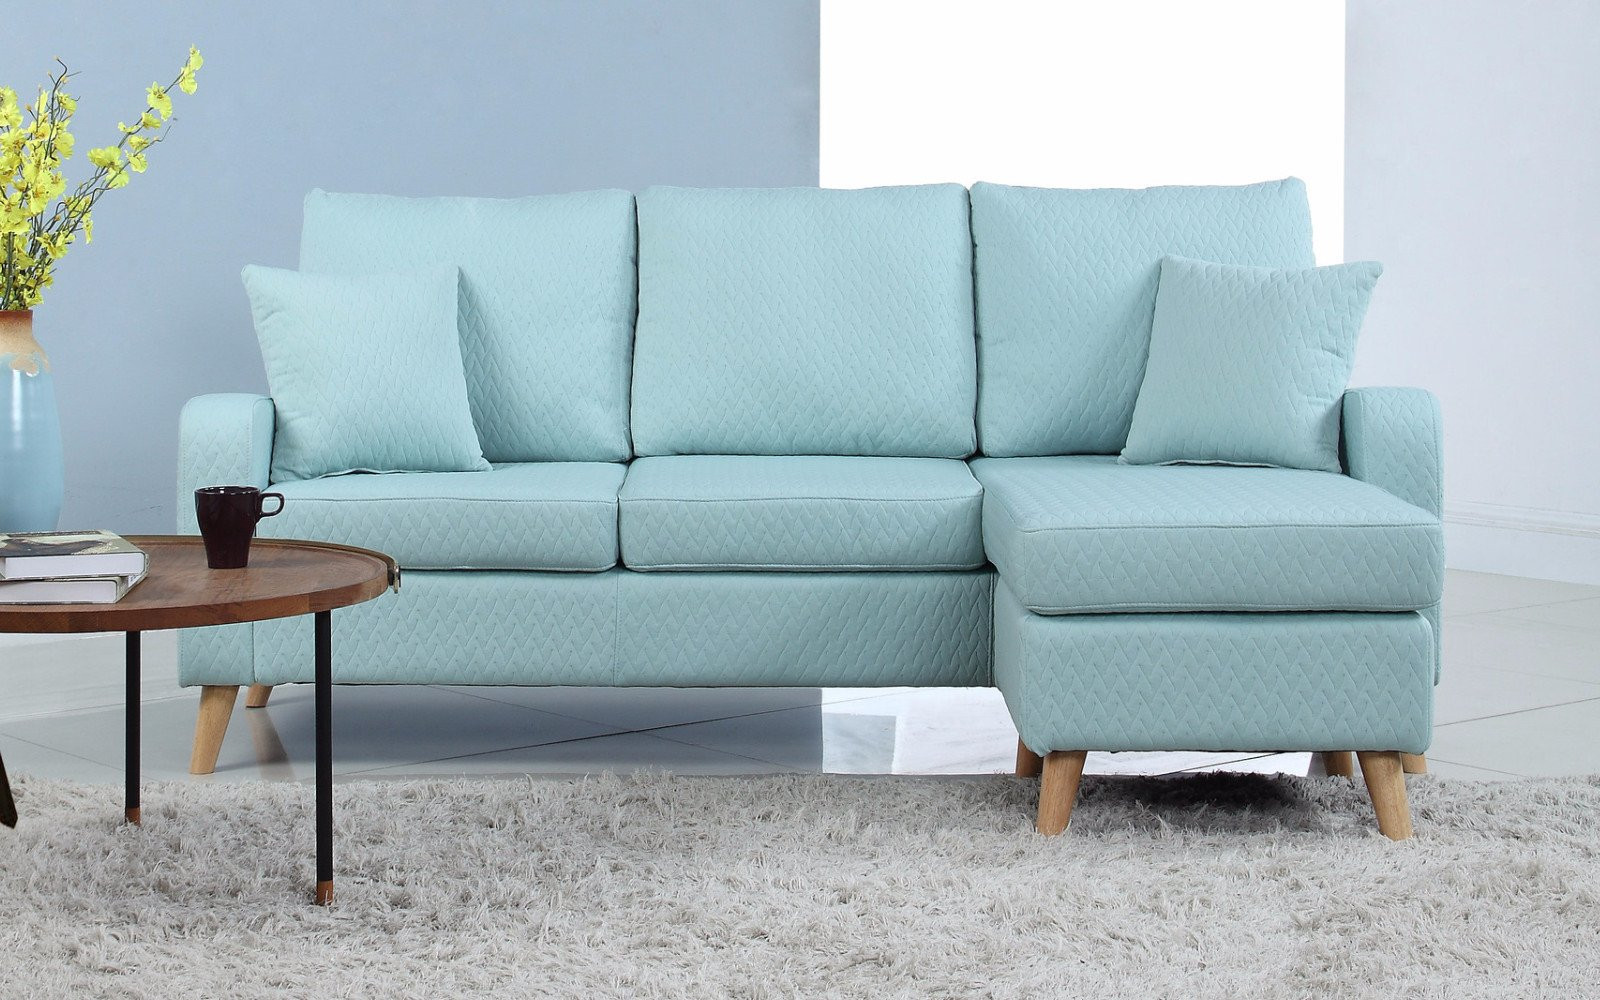 Best ideas about Light Blue Leather Sofa . Save or Pin Sectional Sofas Leather Sectionals Now.